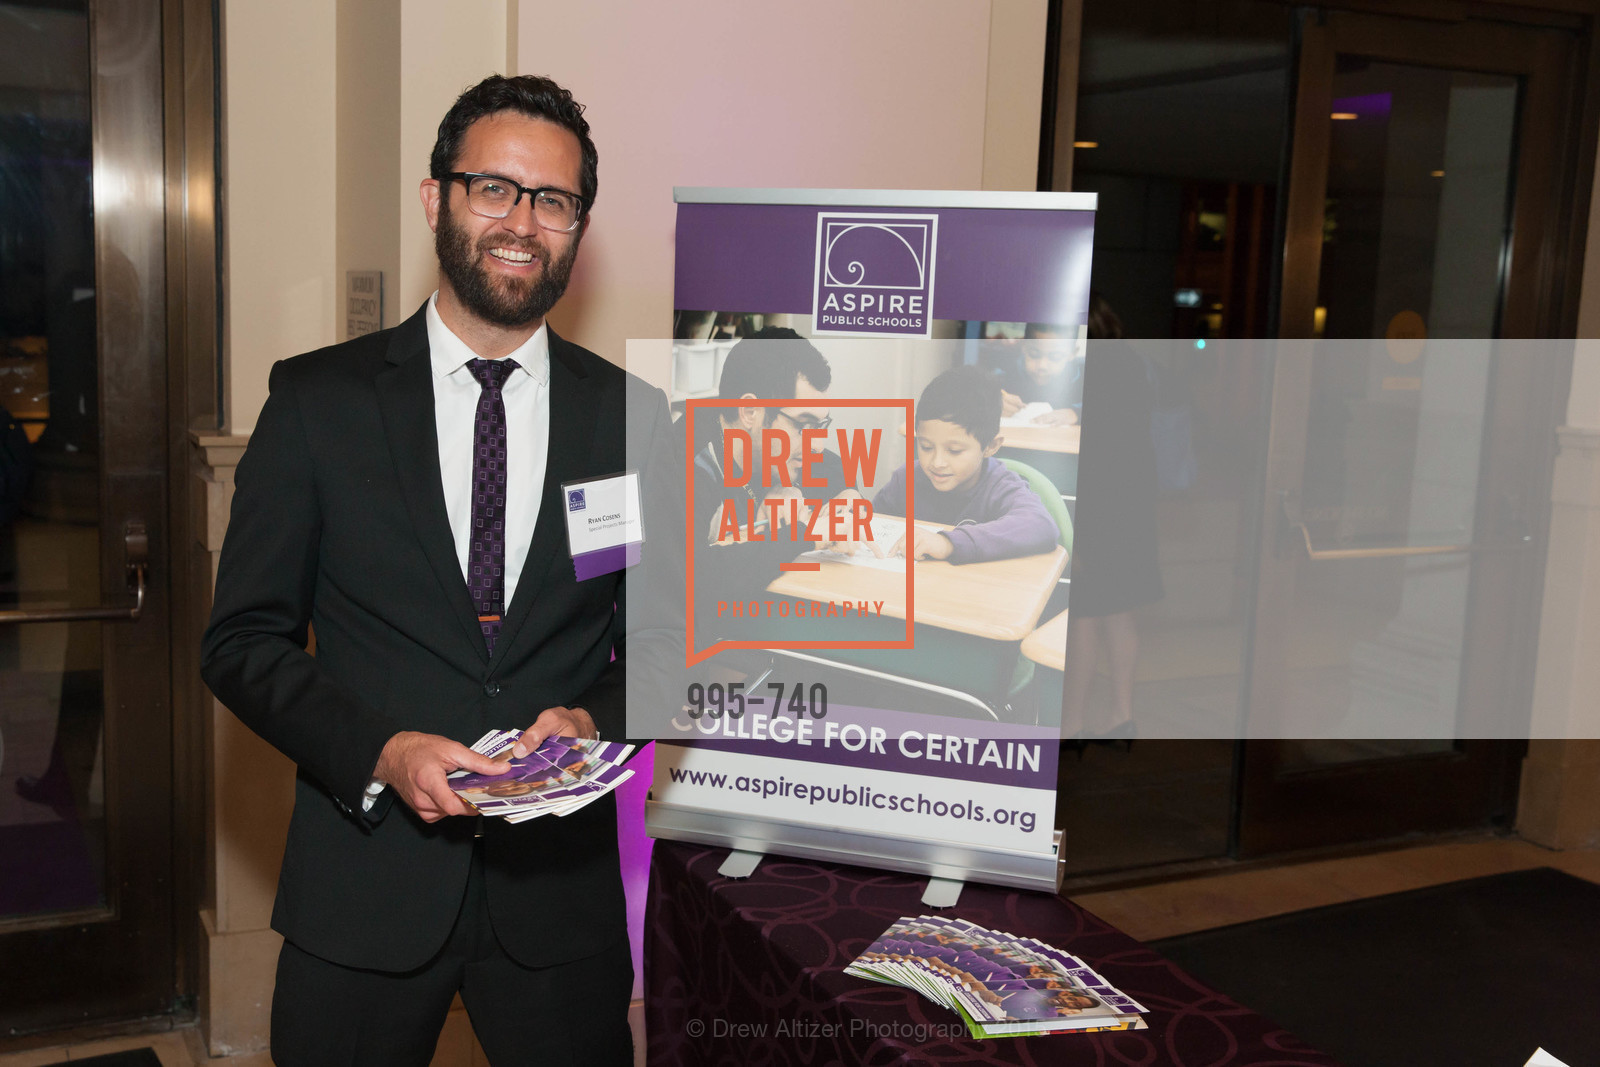 Ryan Cosens, Aspire Annual College for Certain Dinne, US, May 21st, 2015,Drew Altizer, Drew Altizer Photography, full-service agency, private events, San Francisco photographer, photographer california